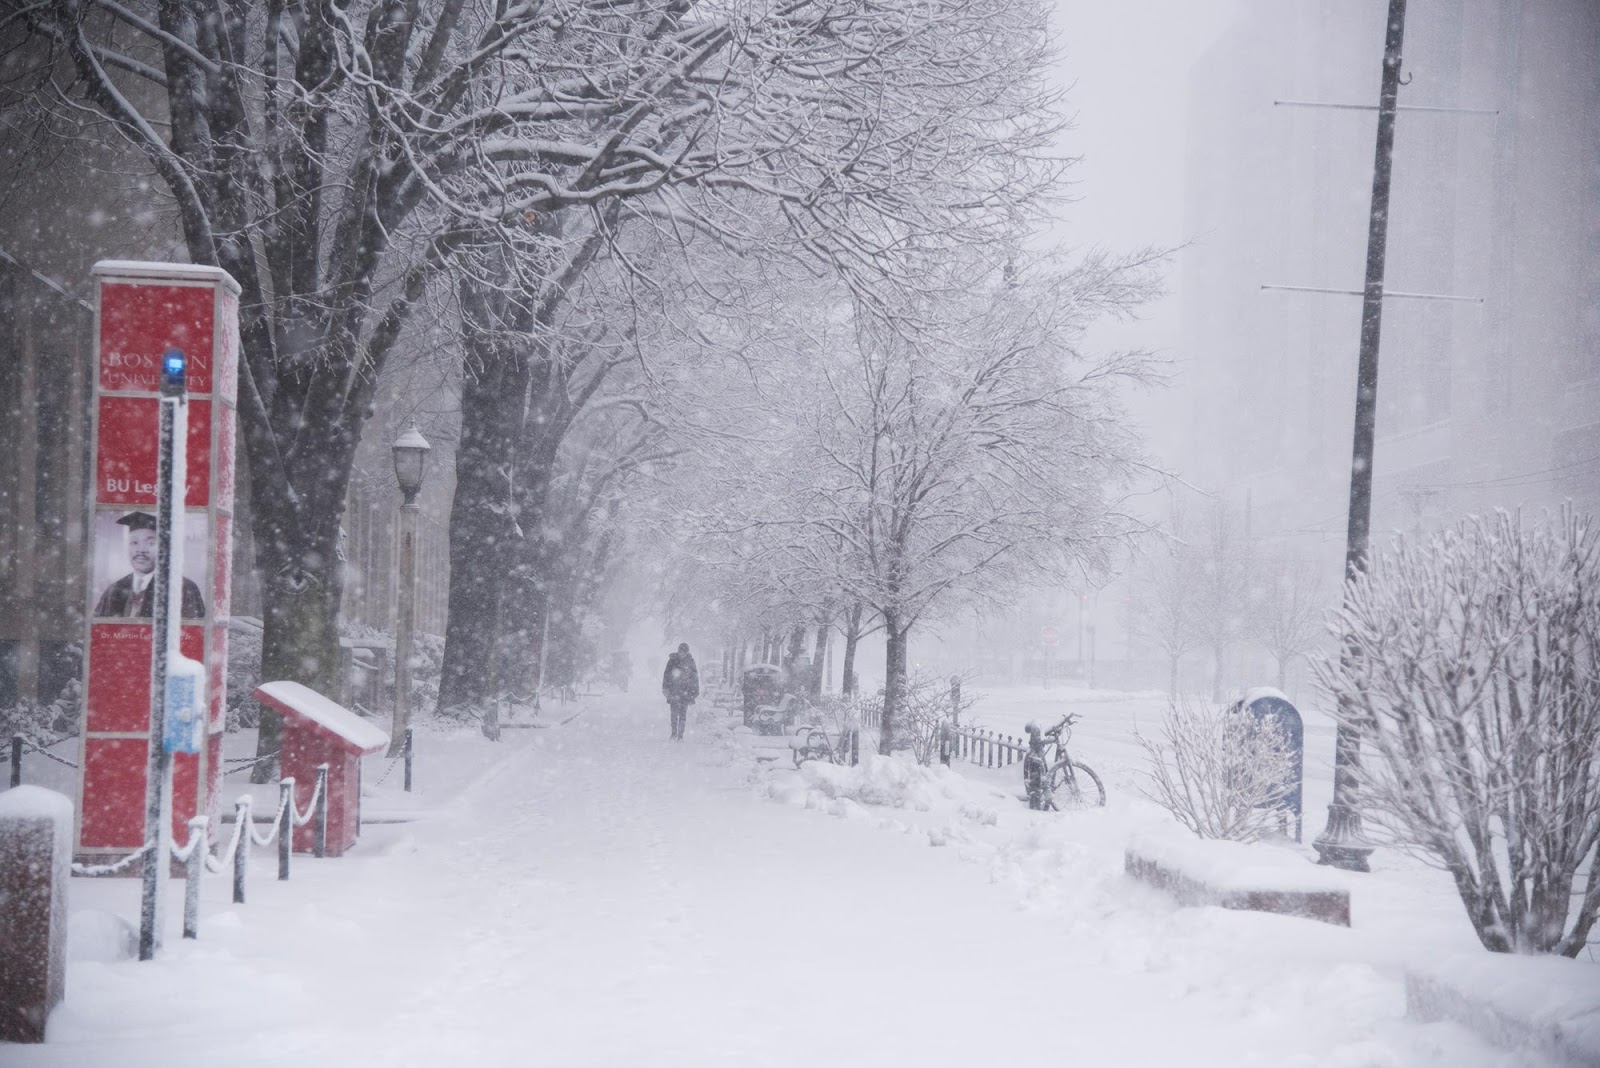 Photo taken during a Nor'Easter in 2018; the sidewalk is covered with snow as figure in jacket walks down. Snow falling blurs the image.